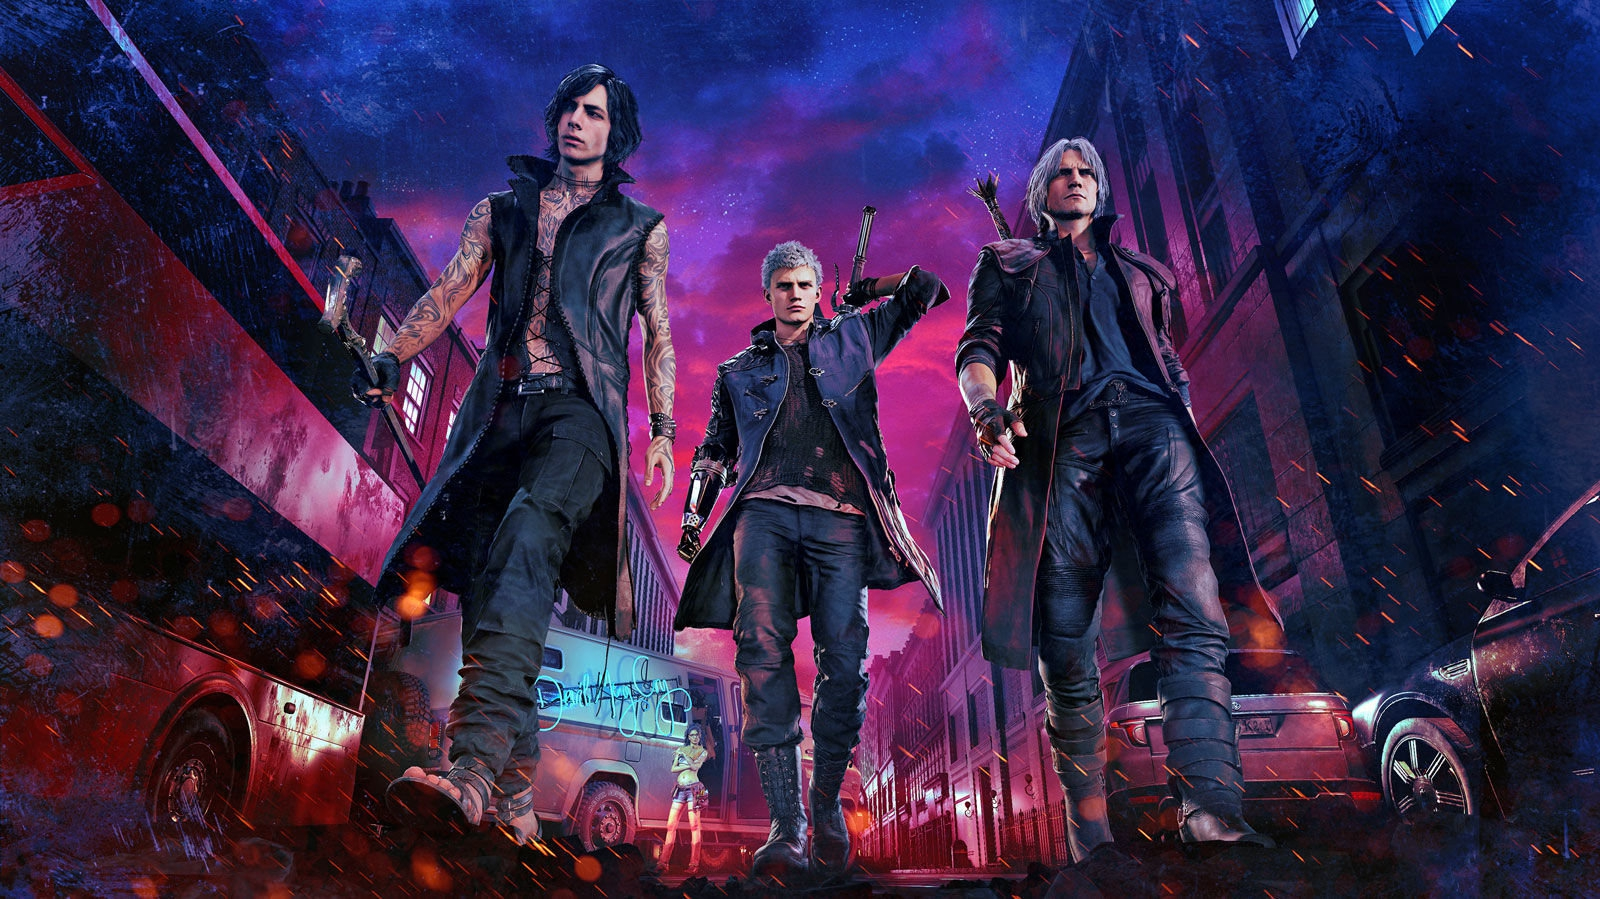 La soundtrack di Devil May Cry 5 è disponibile su Spotify e sugli store digitali